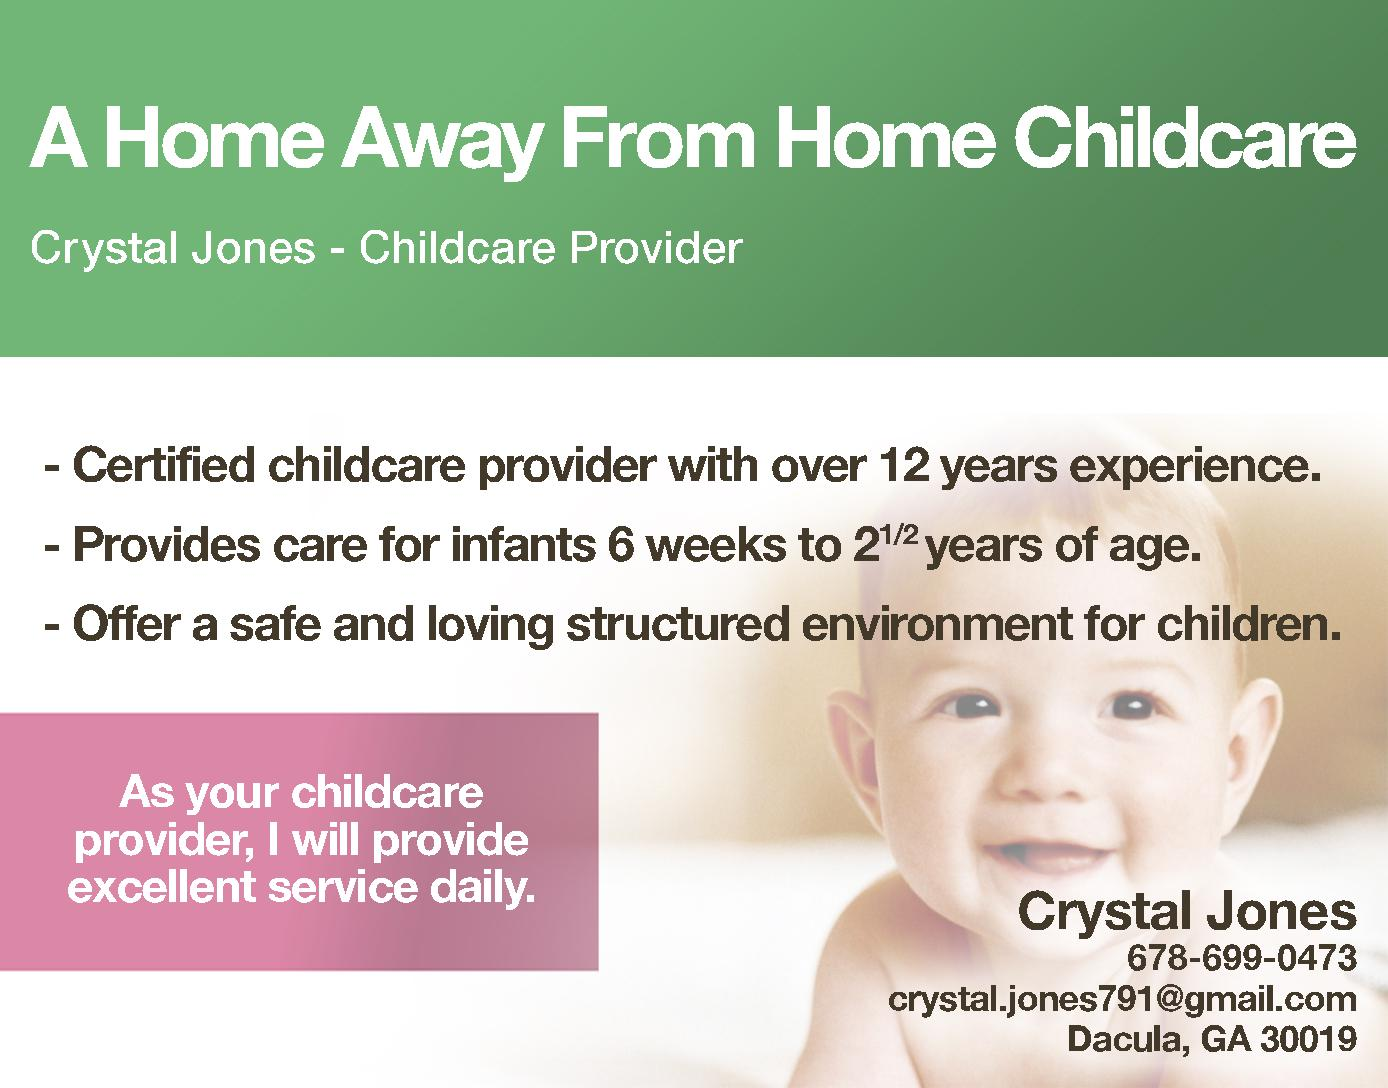 A Home Away From Home Childcare